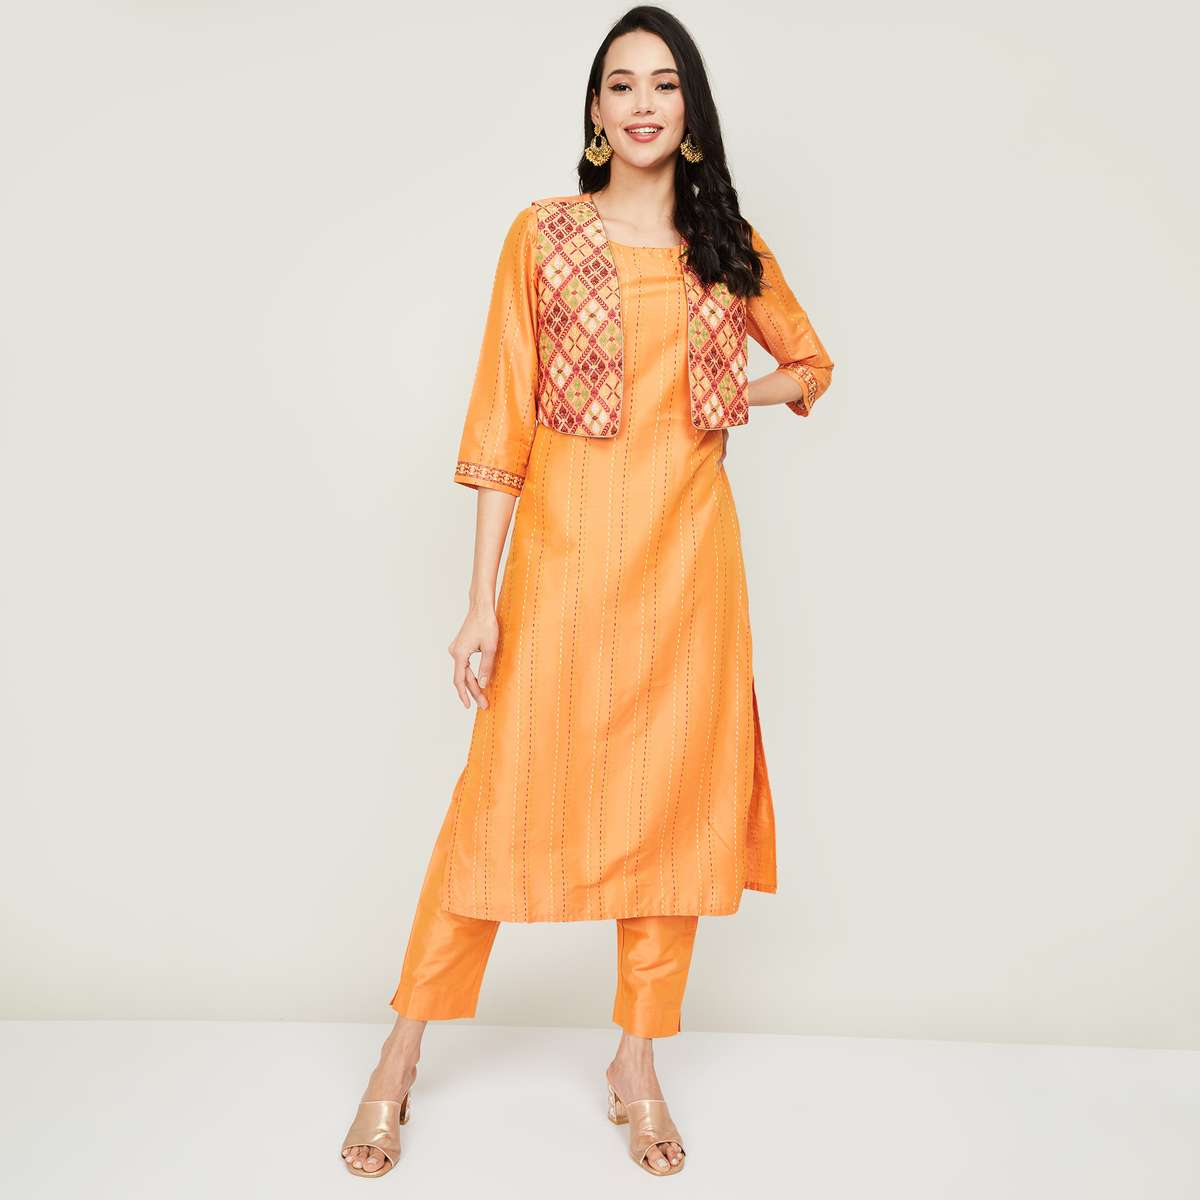 5.MELANGE Women Embroidered Straight Kurta with Jacket and Straight Pants